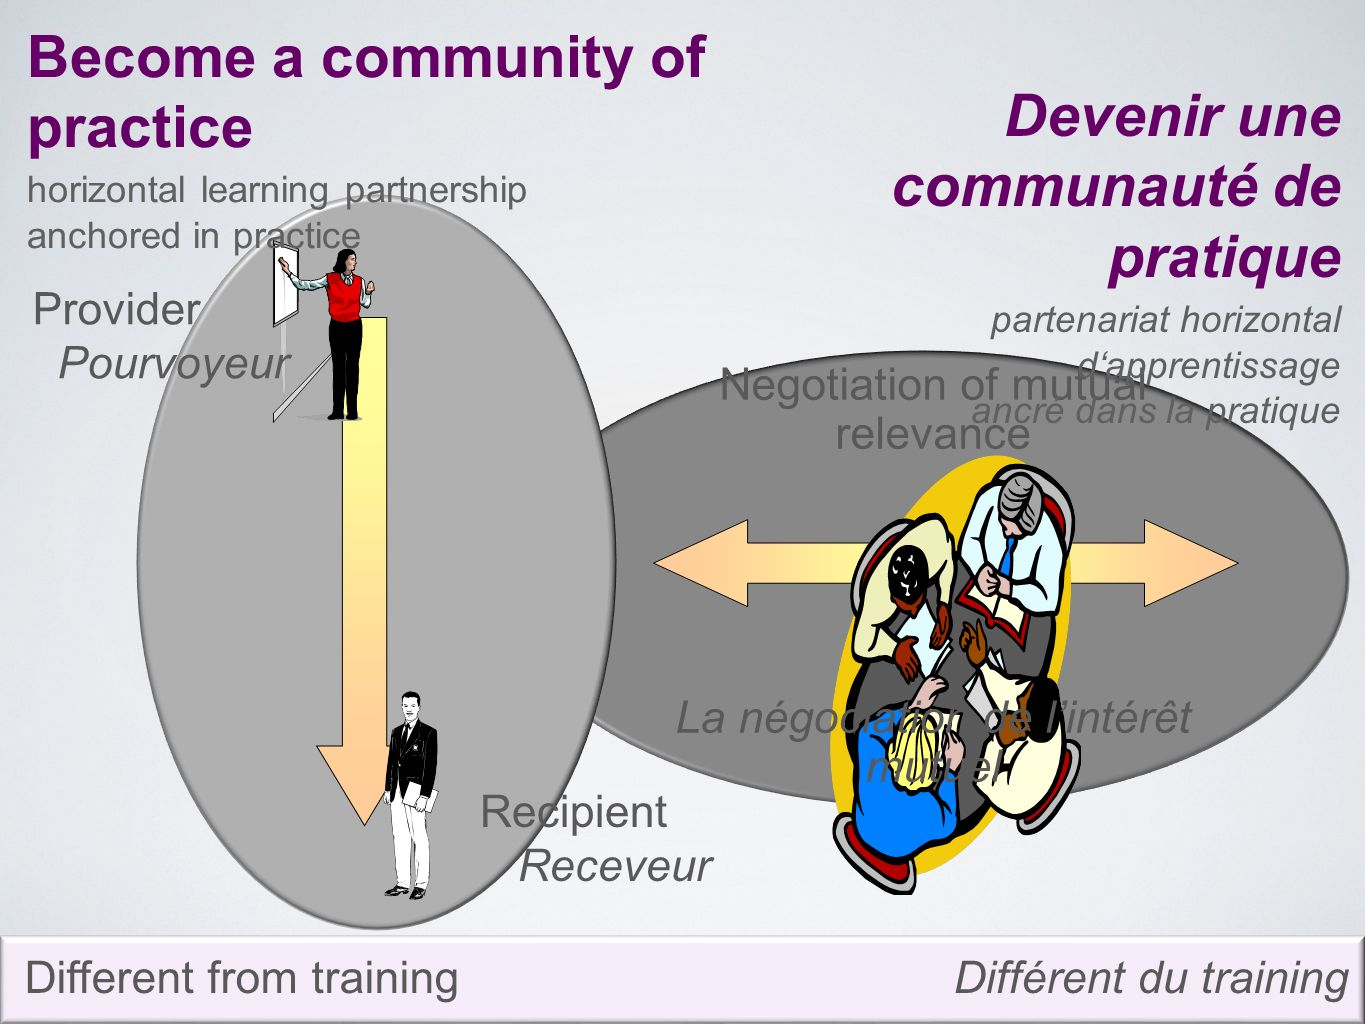 Etienne and Beverly Wenger-Trayner Negotiation of mutual relevance La négociation de lintérêt mutuel Provider Pourvoyeur Recipient Receveur Become a community of practice horizontal learning partnership anchored in practice Devenir une communauté de pratique partenariat horizontal dapprentissage ancré dans la pratique Différent du trainingDifferent from training